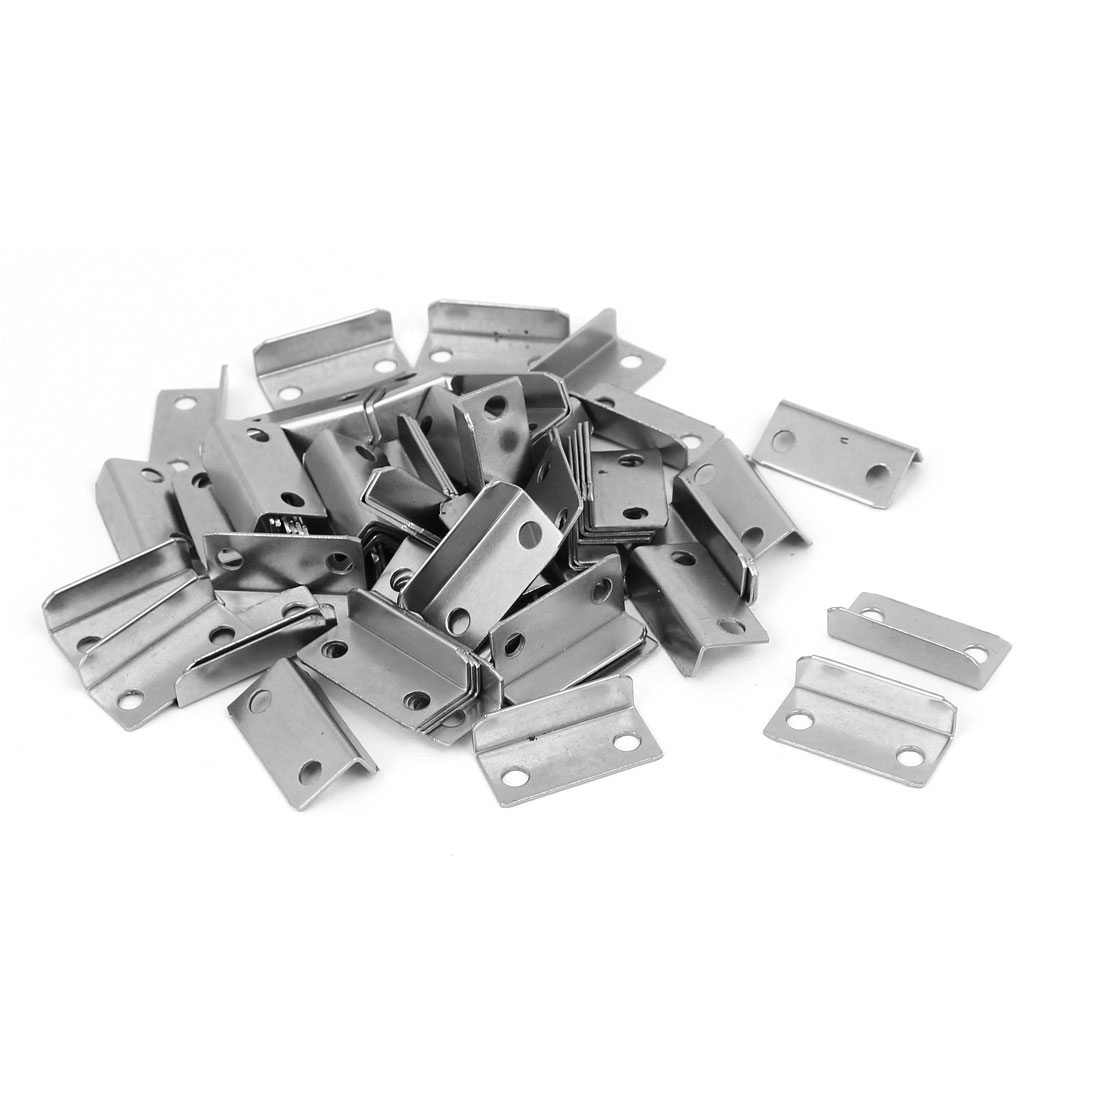 Home Cabinet Drawer Door L Shaped Metal Lock Strike Plate 29mmx14mmx8.5mm 80pcs